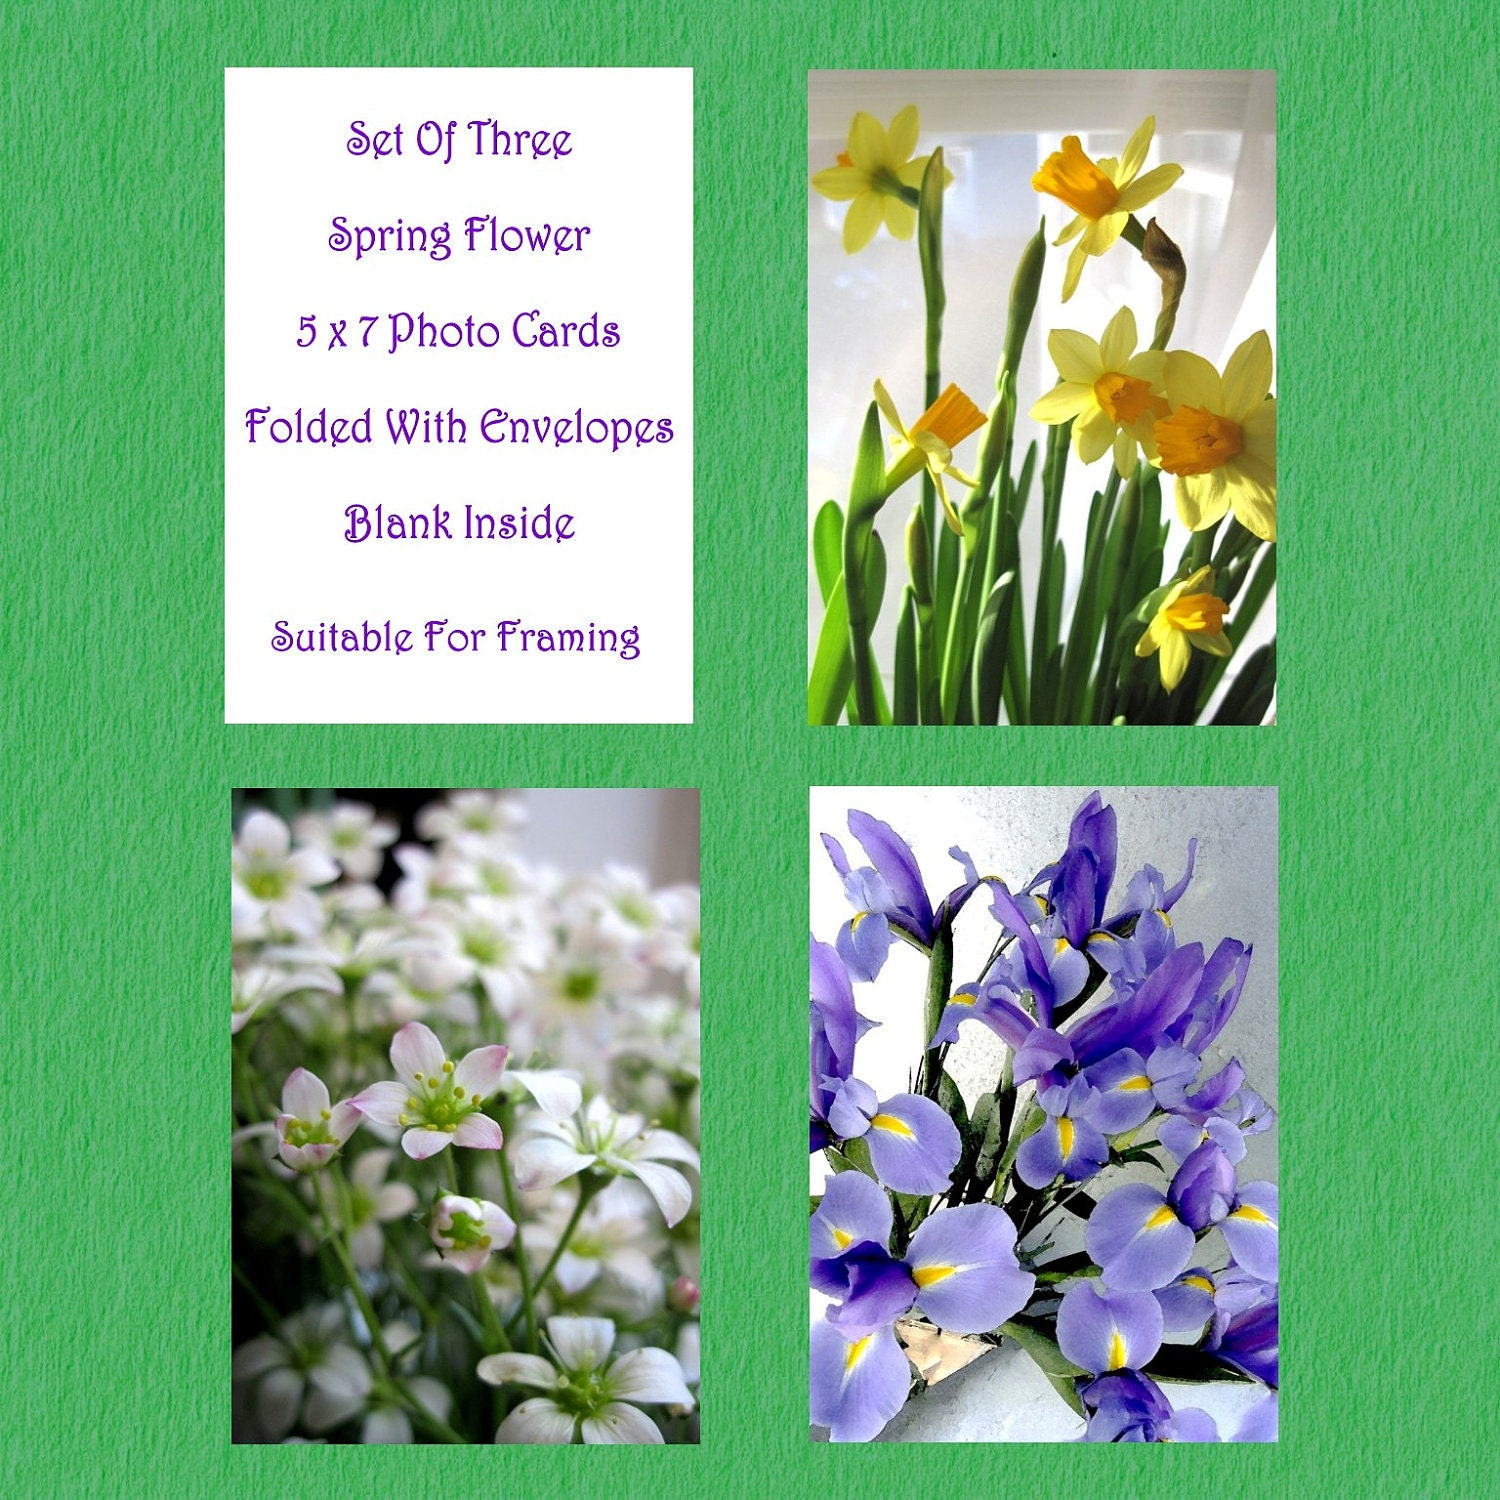 SPRING CARDS FLOWERS Photo Cards, Set of Three 5 x 7 Spring Flower Photos, Folded Cards, Blank Inside, With Envelopes